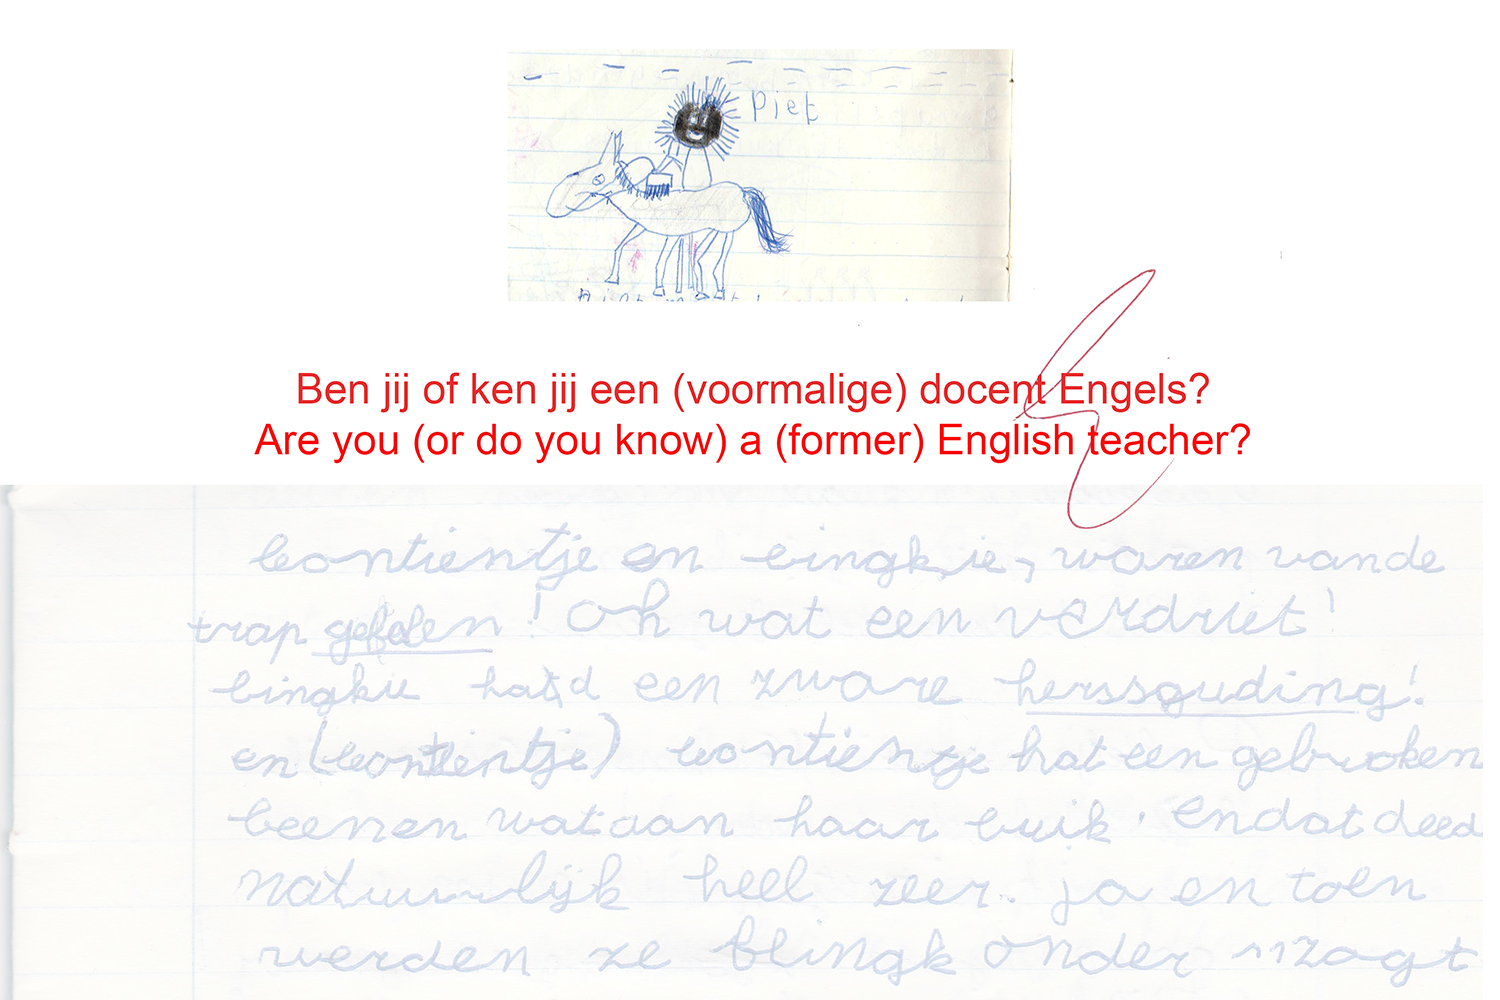 Are you (or do you know) a (former) English teacher?